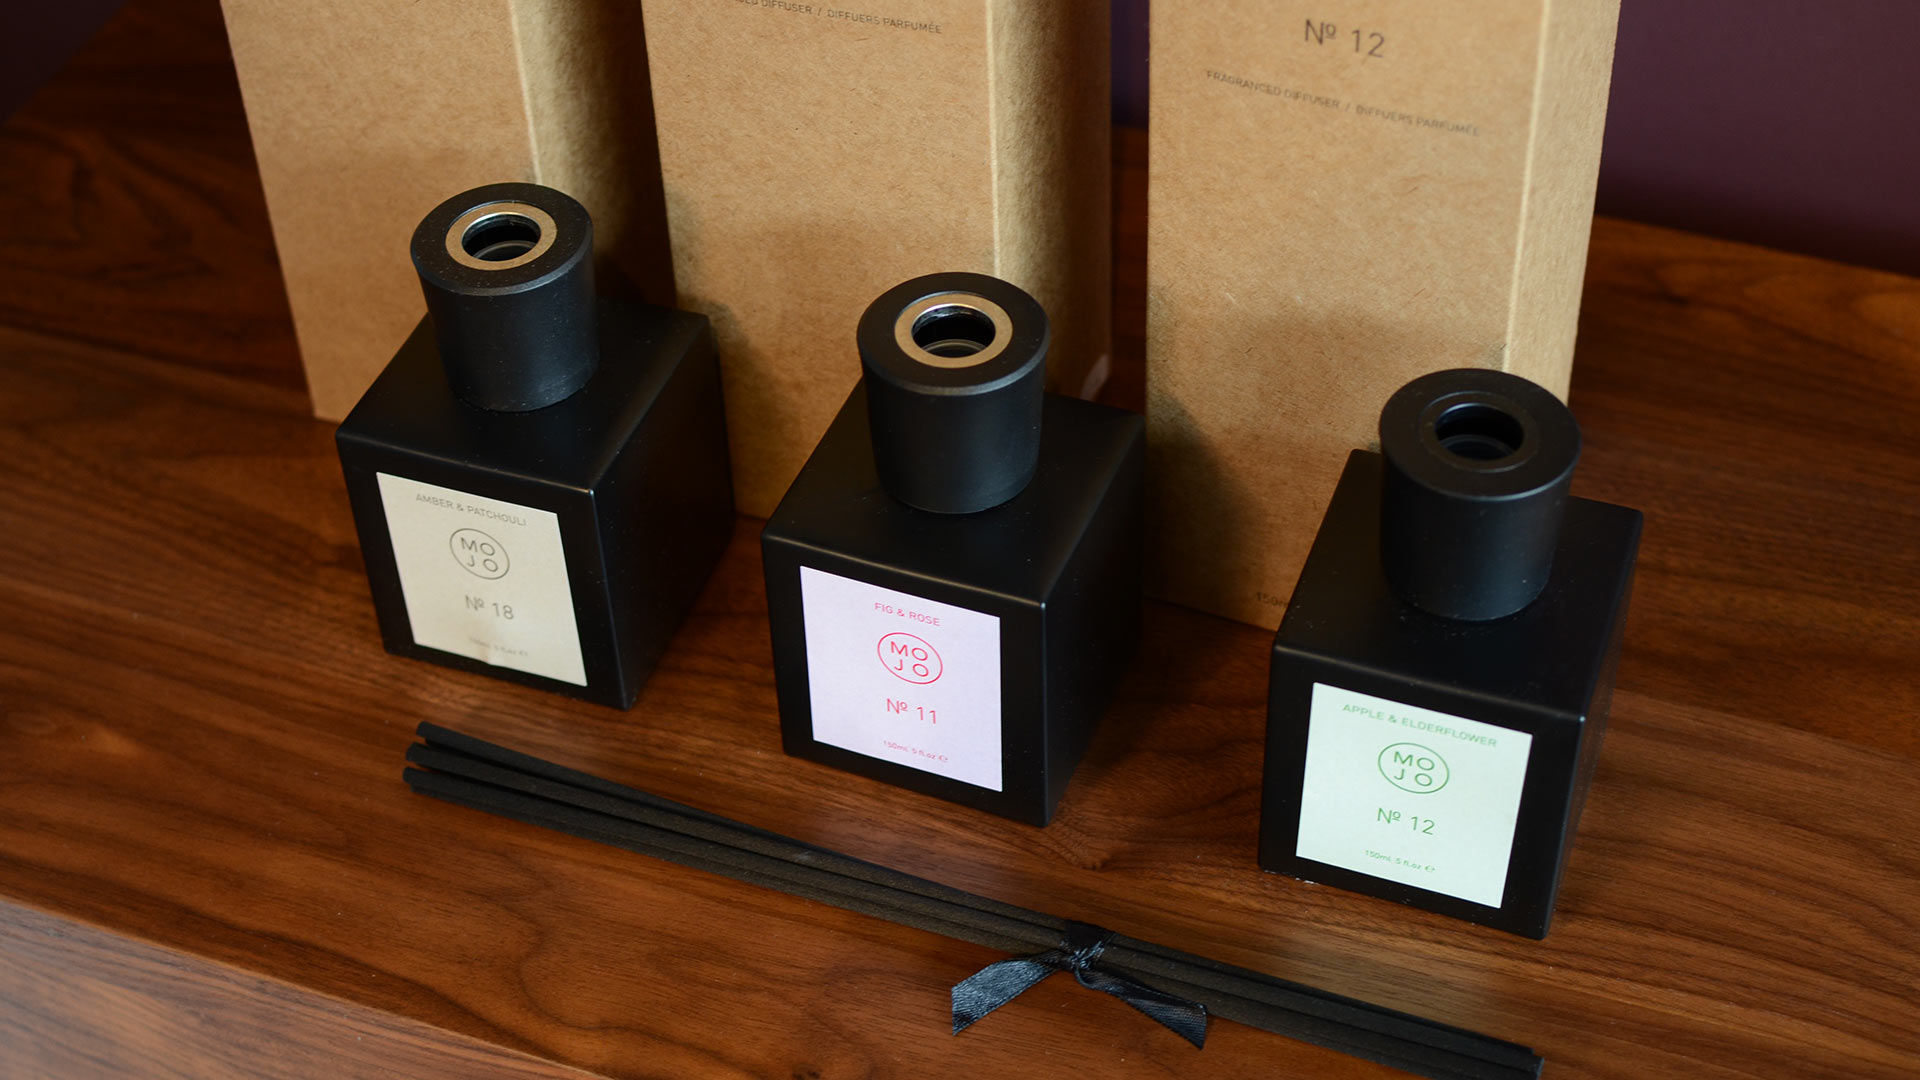 mojo-scented-room-diffusers